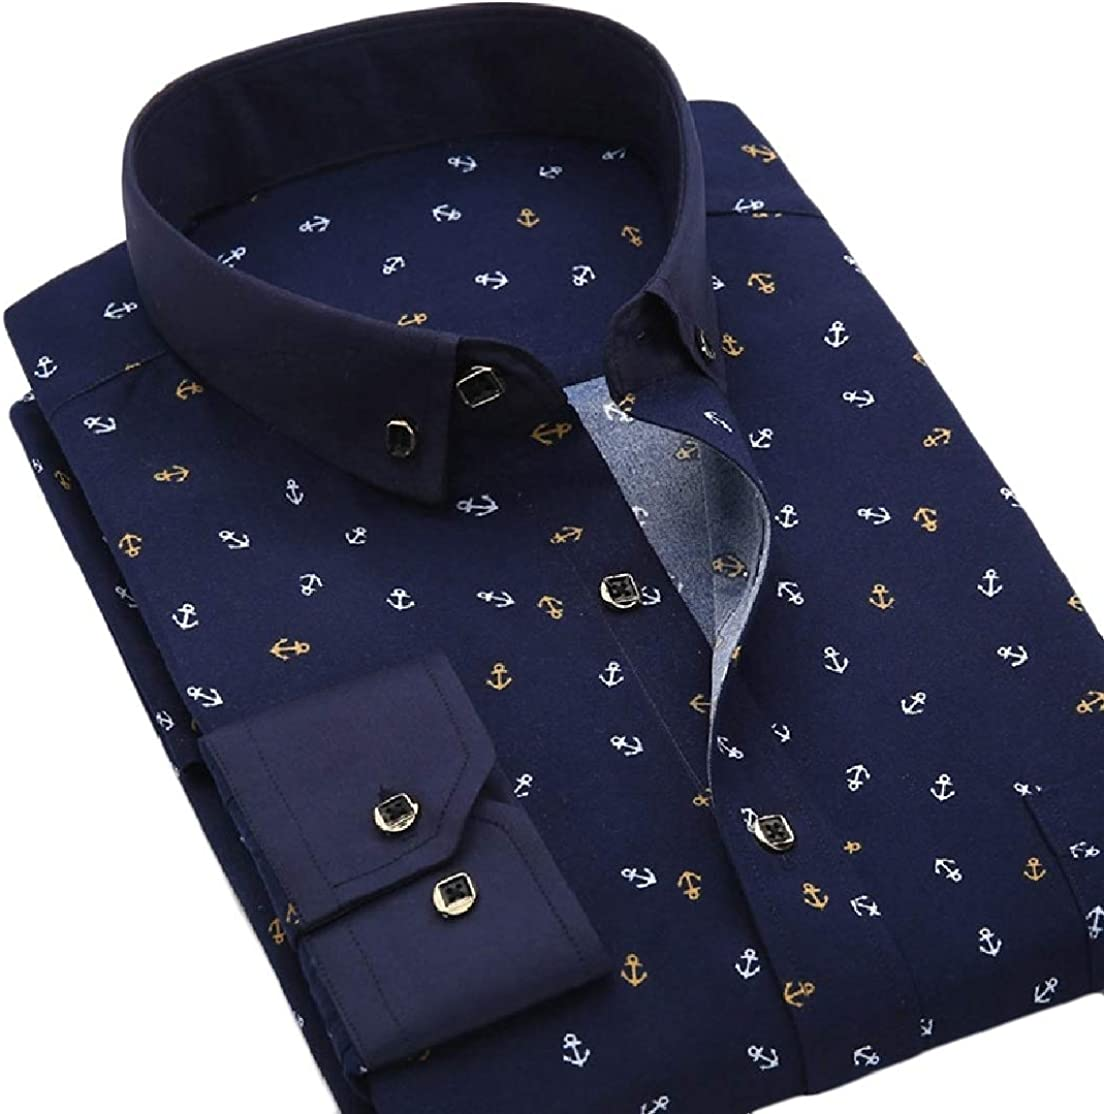 Colourful Mens Flower Print Business Oversize Leisure Dress Shirts Top